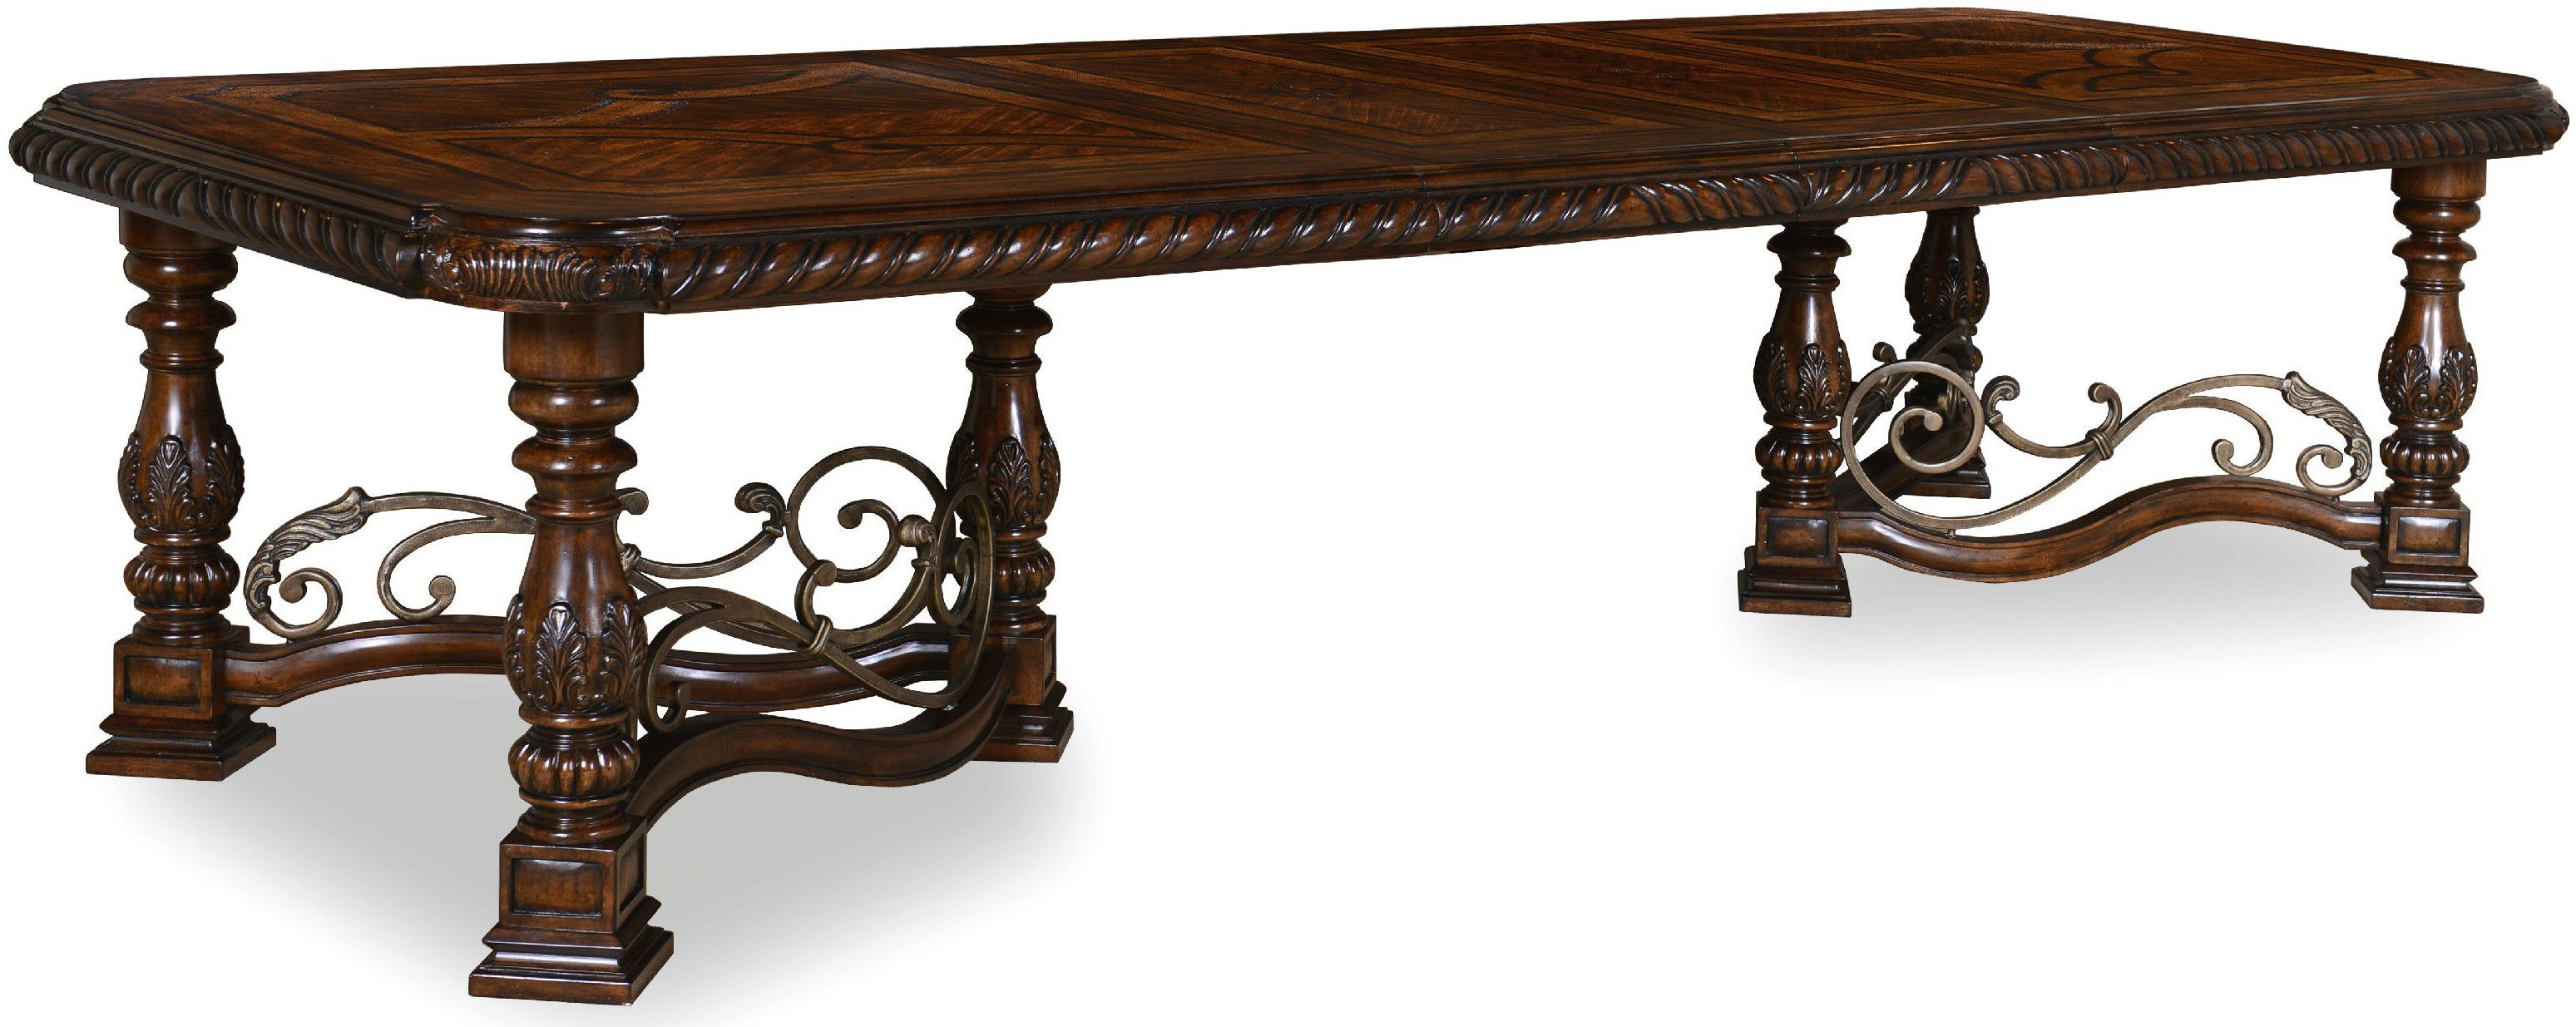 ART Furniture Dining Room Trestle Dining Table 209221 2304  : 209221 2304sl1 from www.shofers.com size 768 x 576 jpeg 28kB